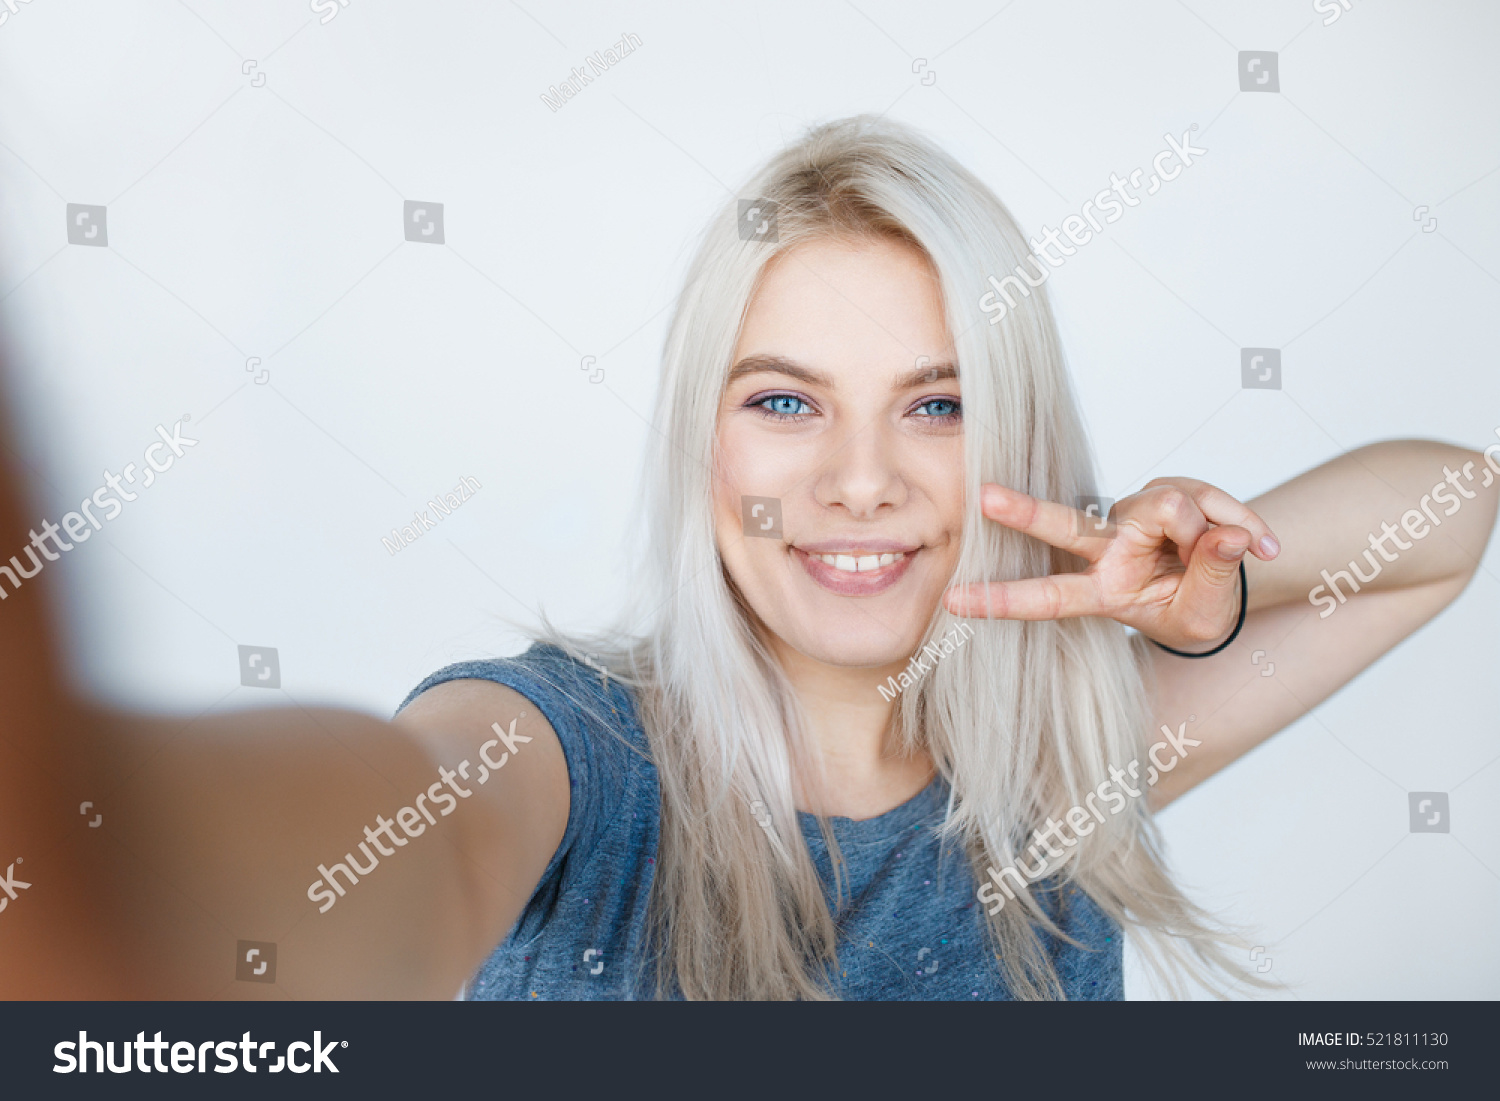 Pretty Young Girl Blond Dyed Hair Stock Photo Edit Now 521811130